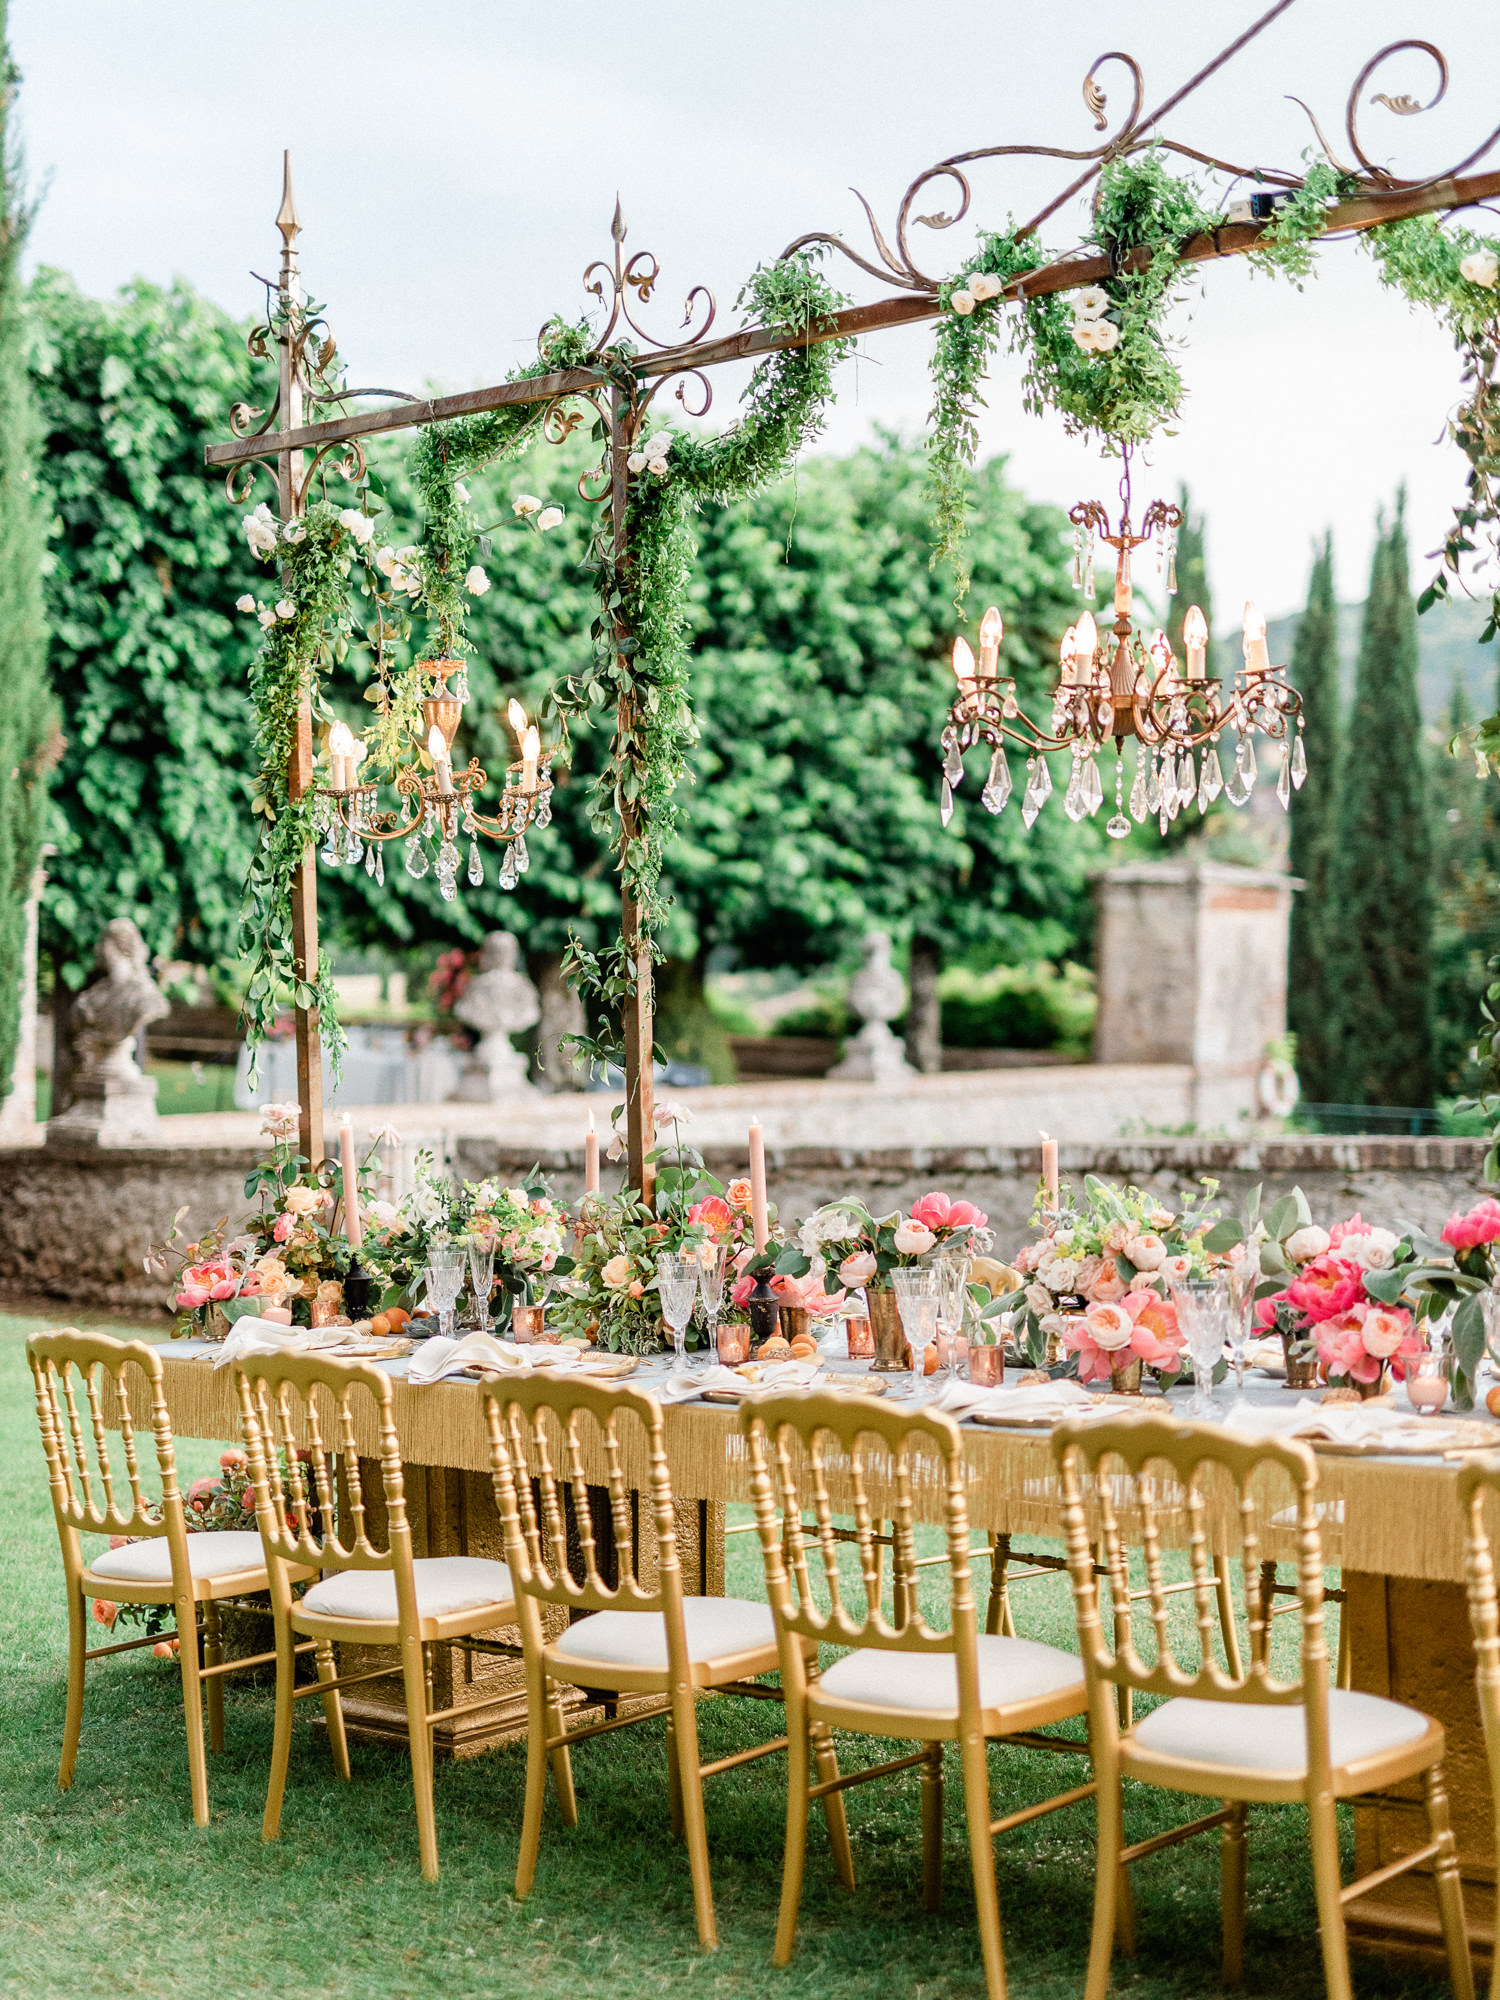 Elegant reception decor with gold chairs and chandeliers - photo by Gianluca Adoviaso Photography